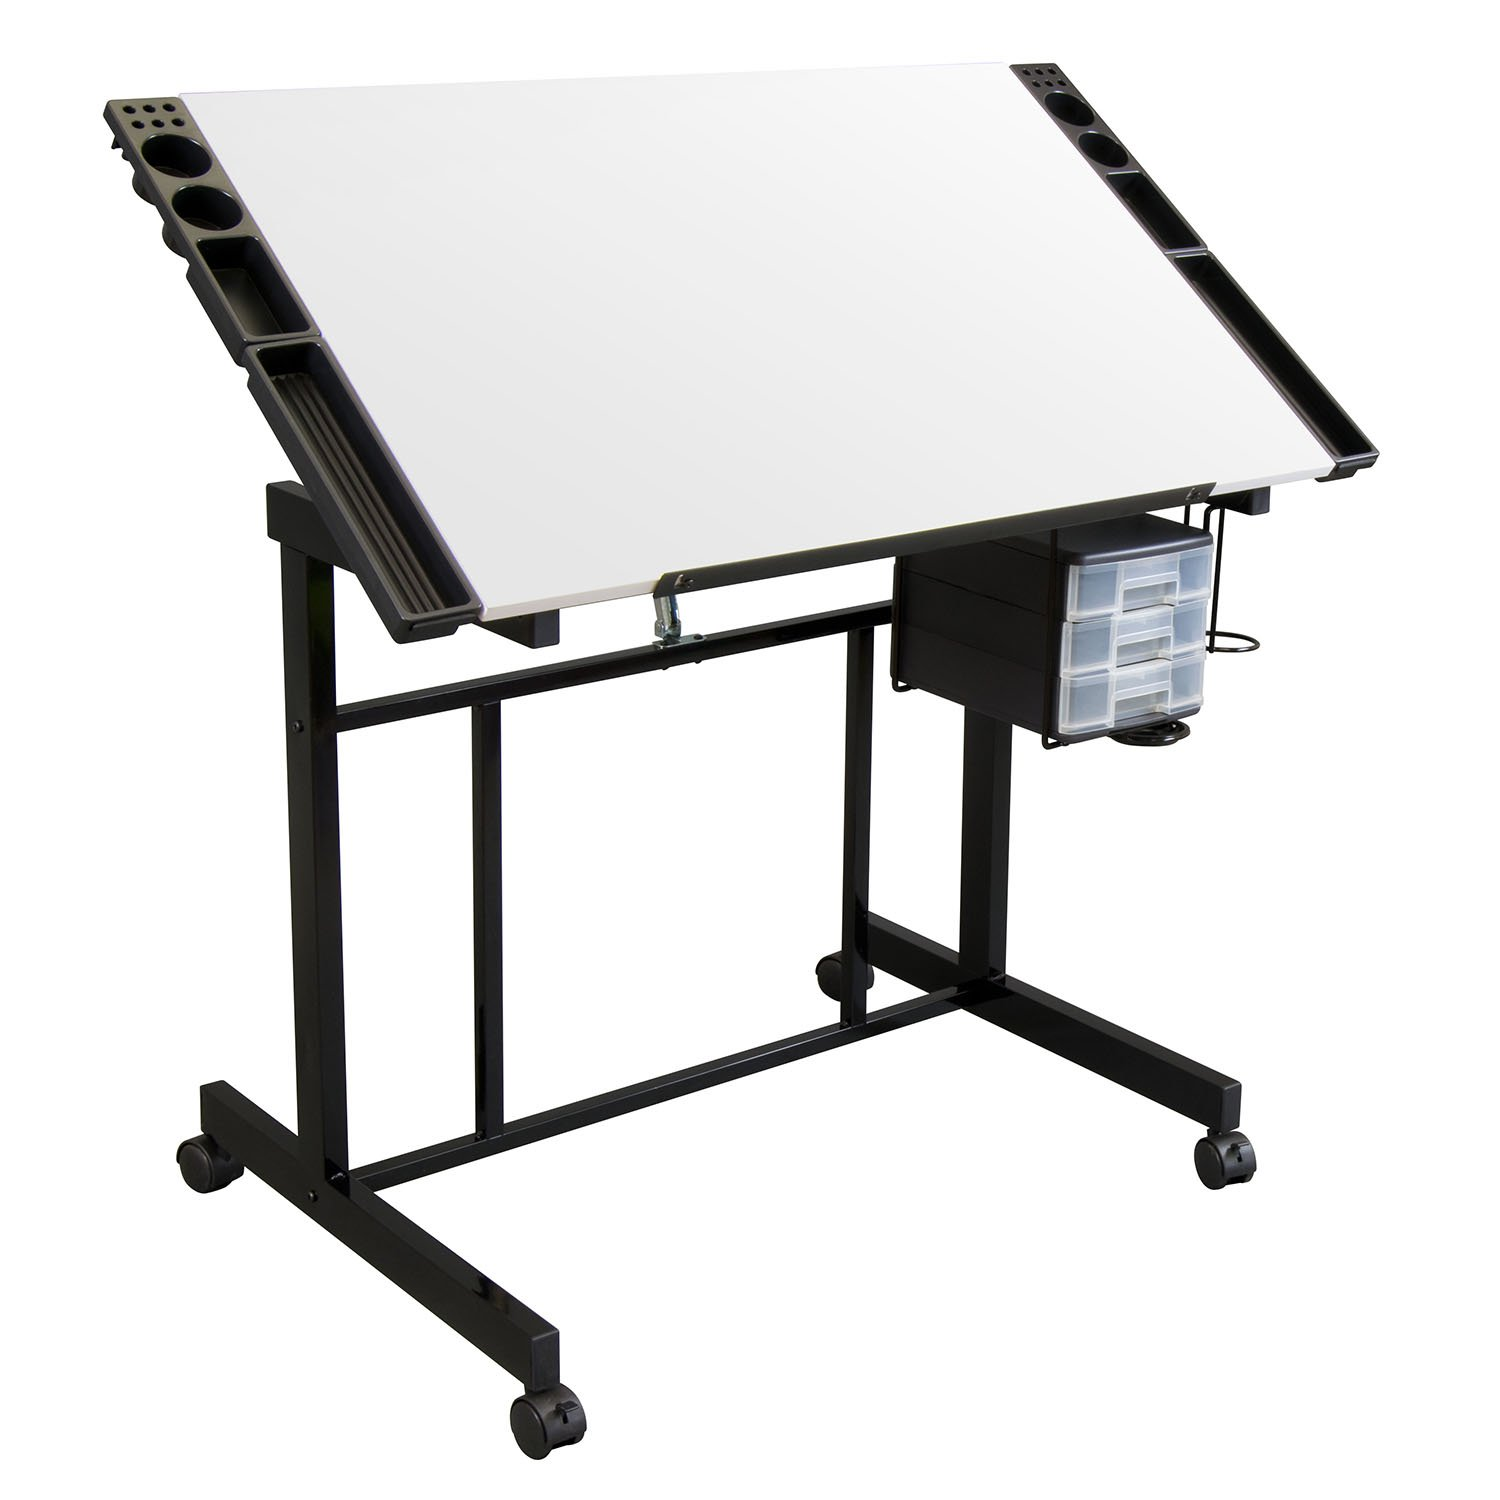 Offex Home Deluxe Craft Station - Black/White